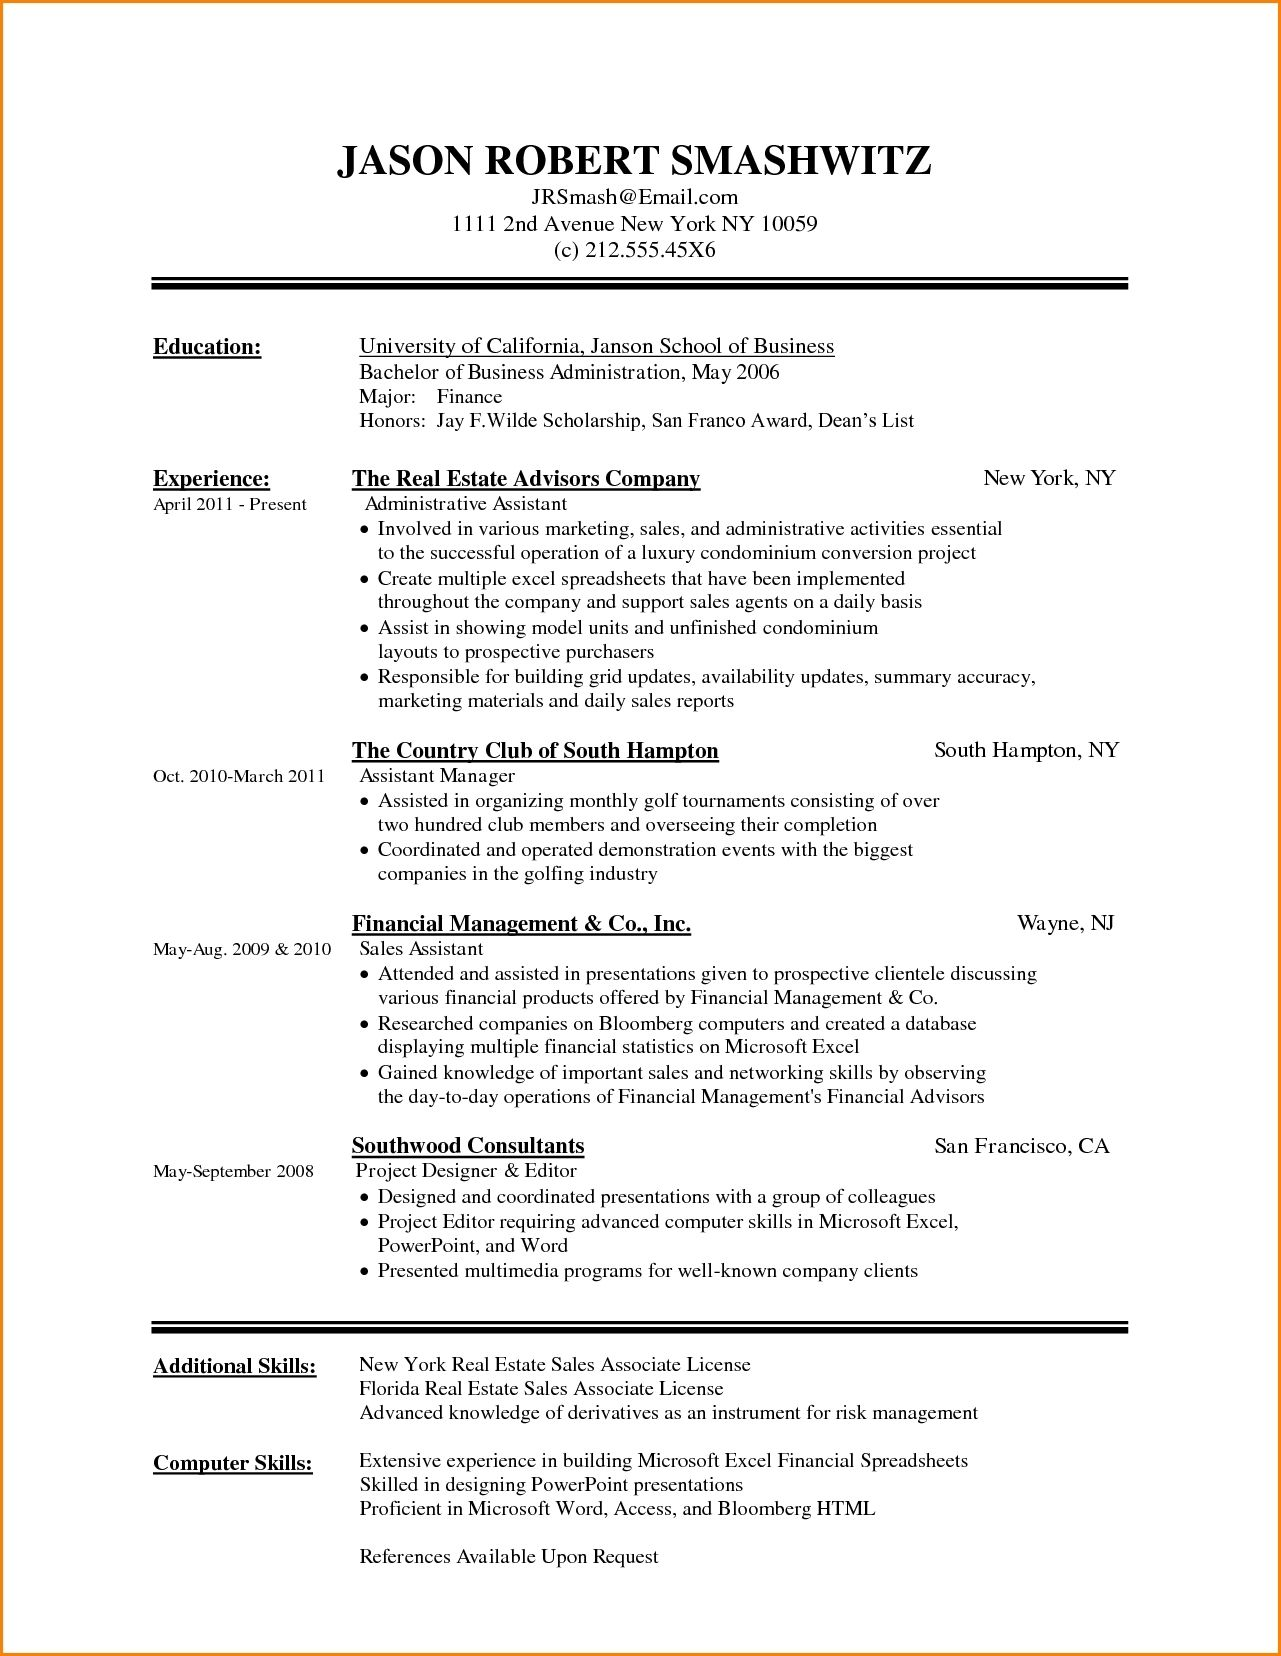 Resume Format With Skills In 2020 Microsoft Word Resume Template